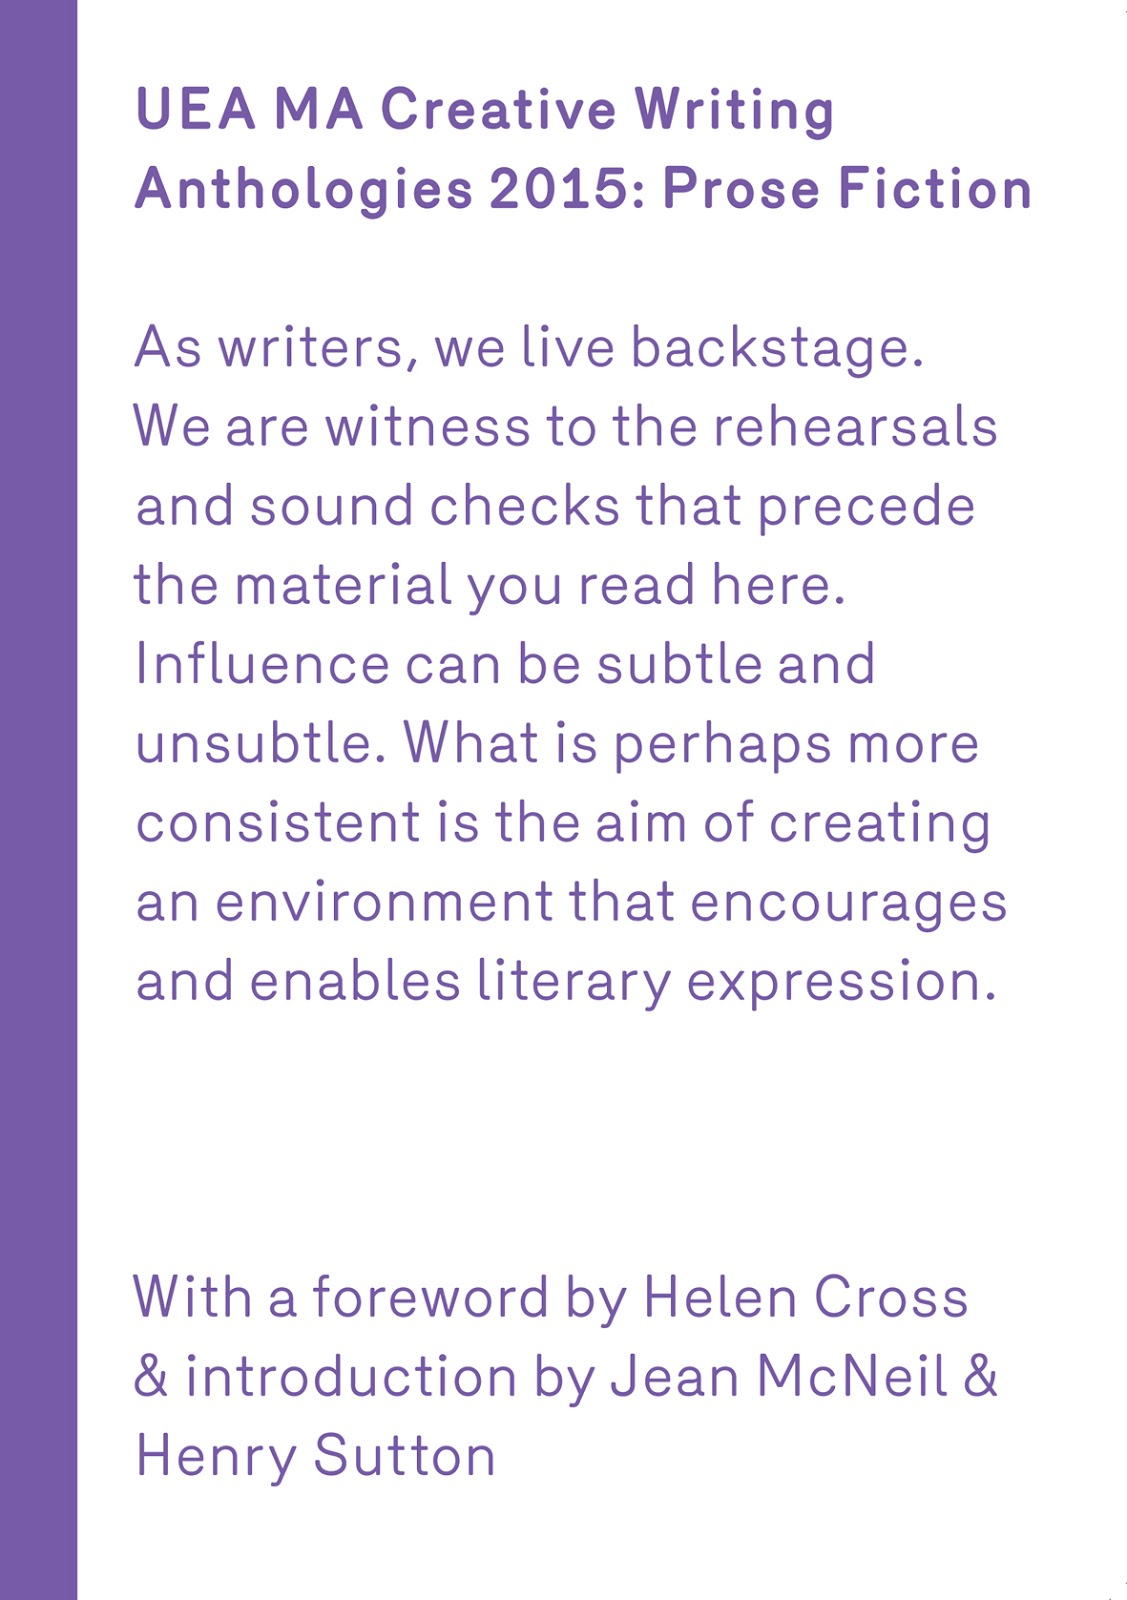 UEA Creative Writing Anthology Prose 2015